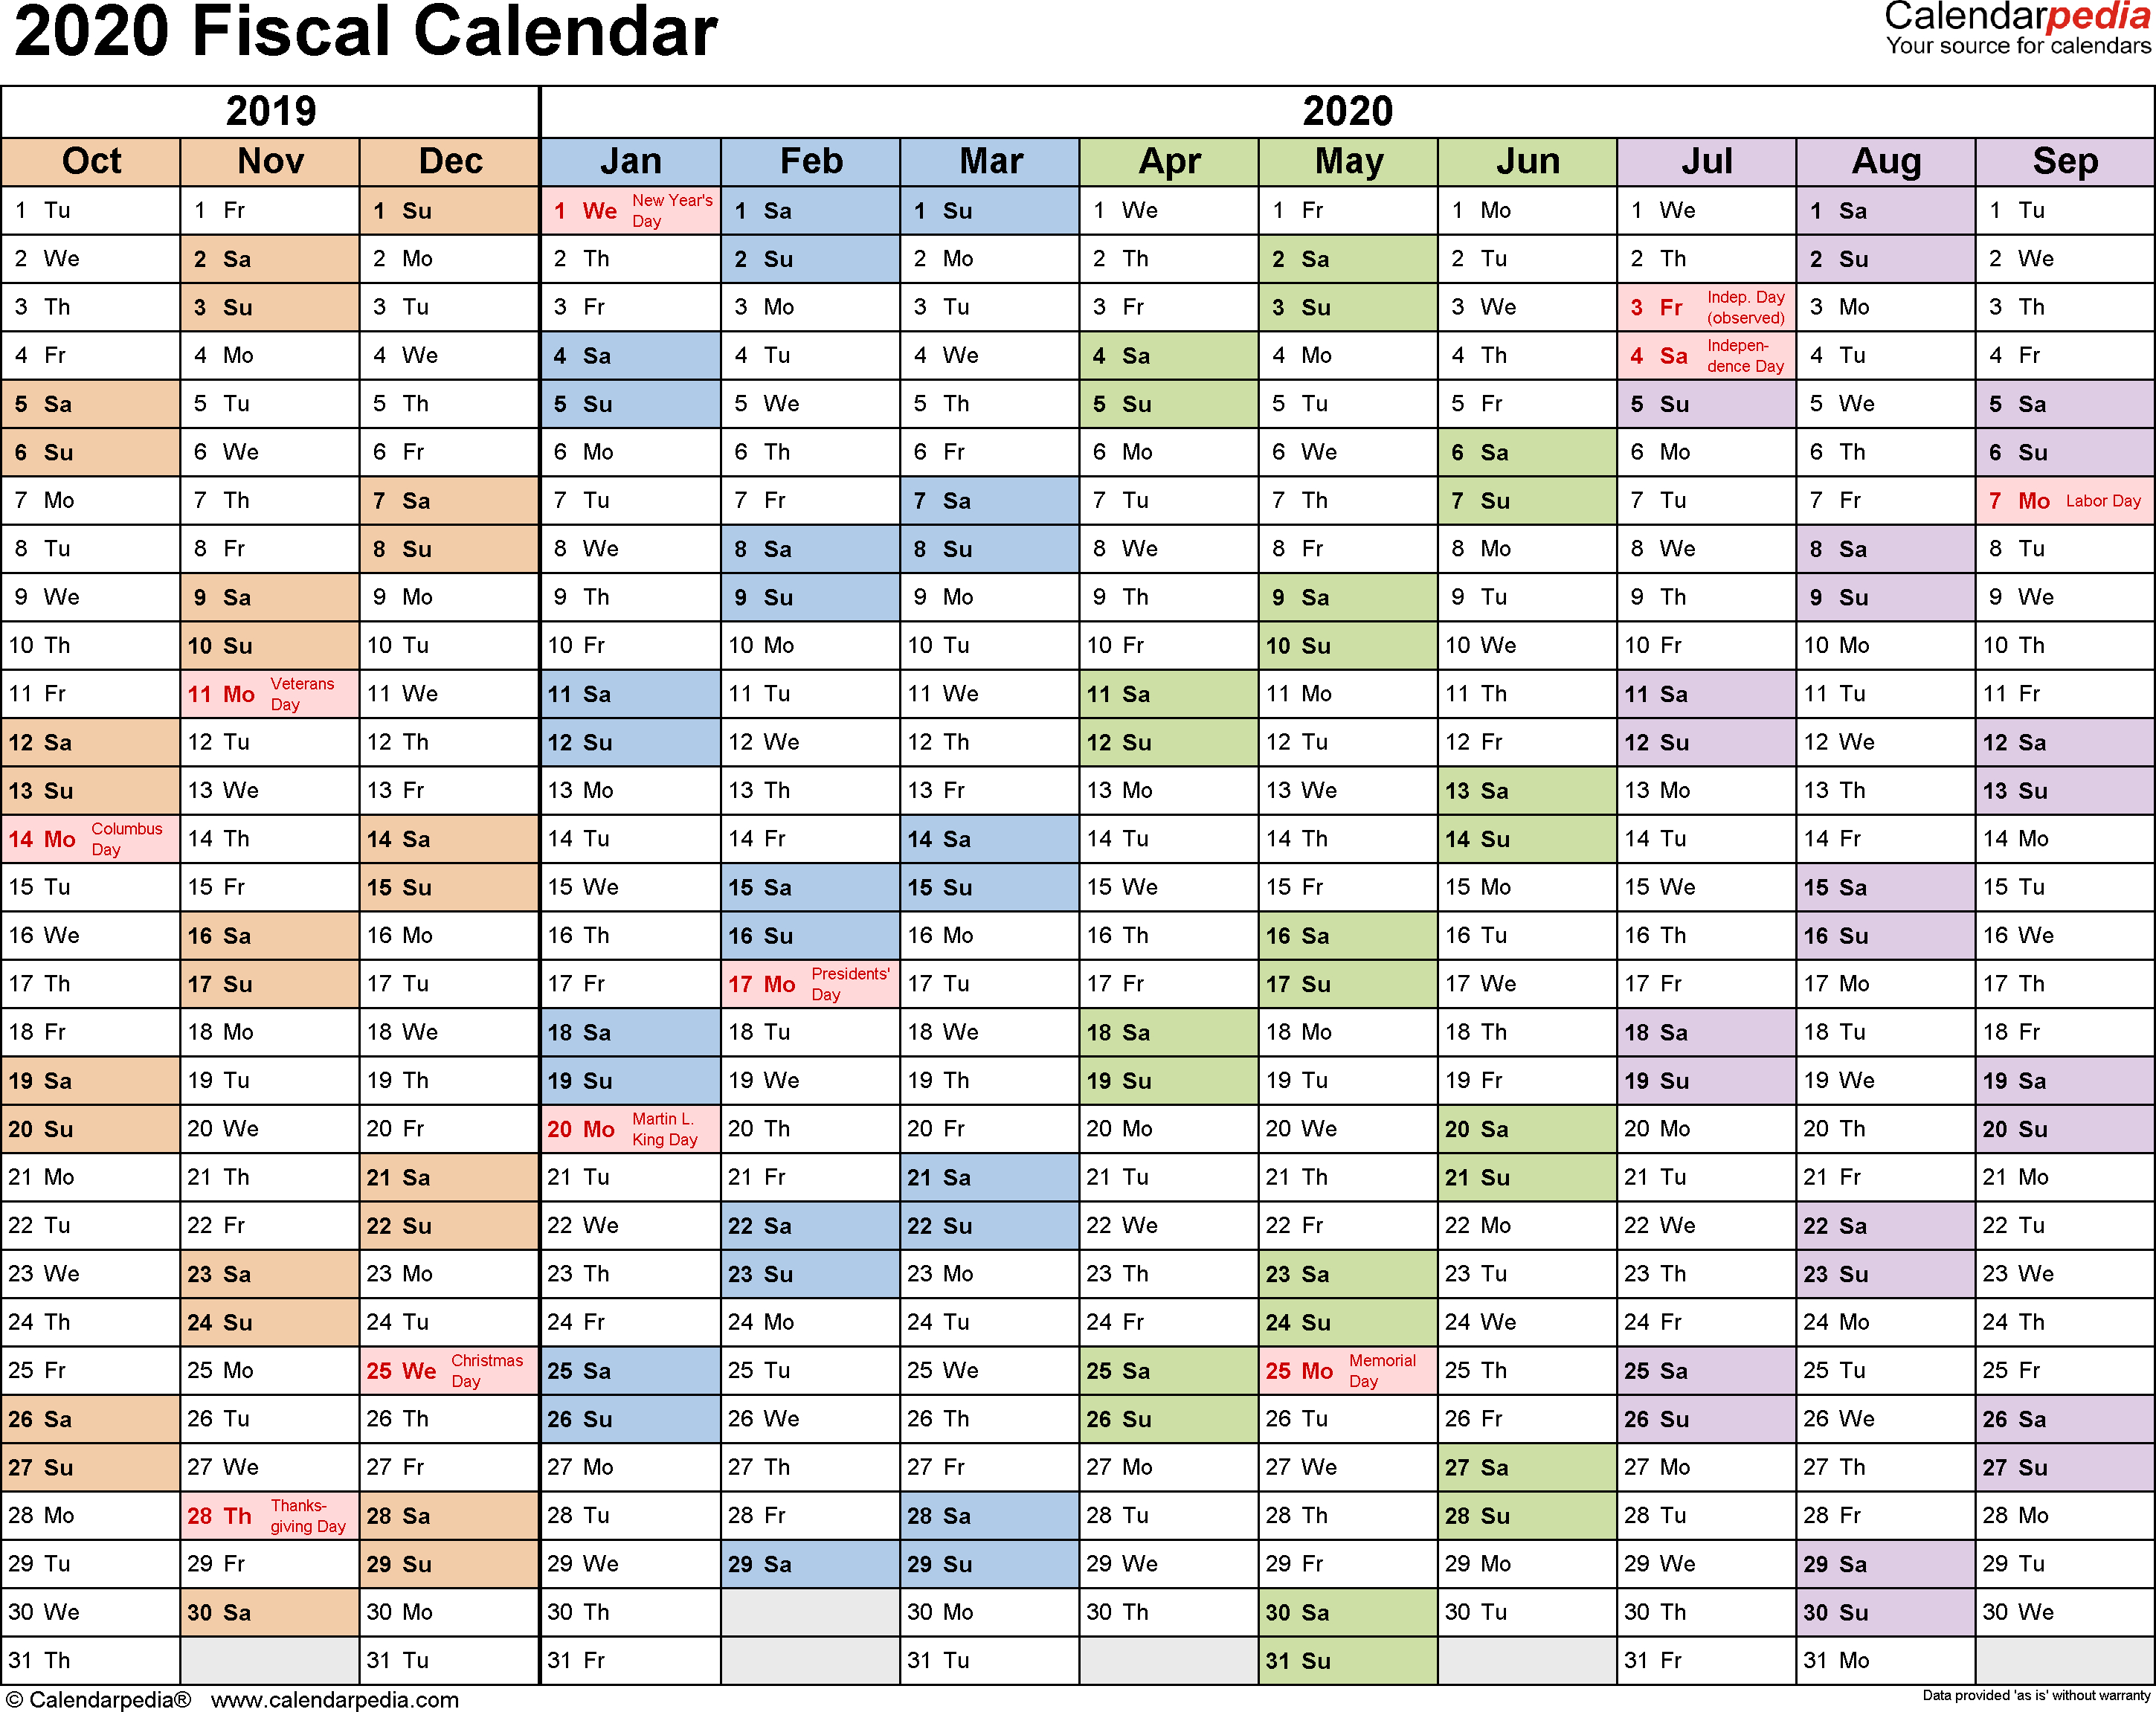 Fiscal Calendars 2020 As Free Printable Excel Templates with regard to Fiscal Calendar 2019/2020 Free Printable